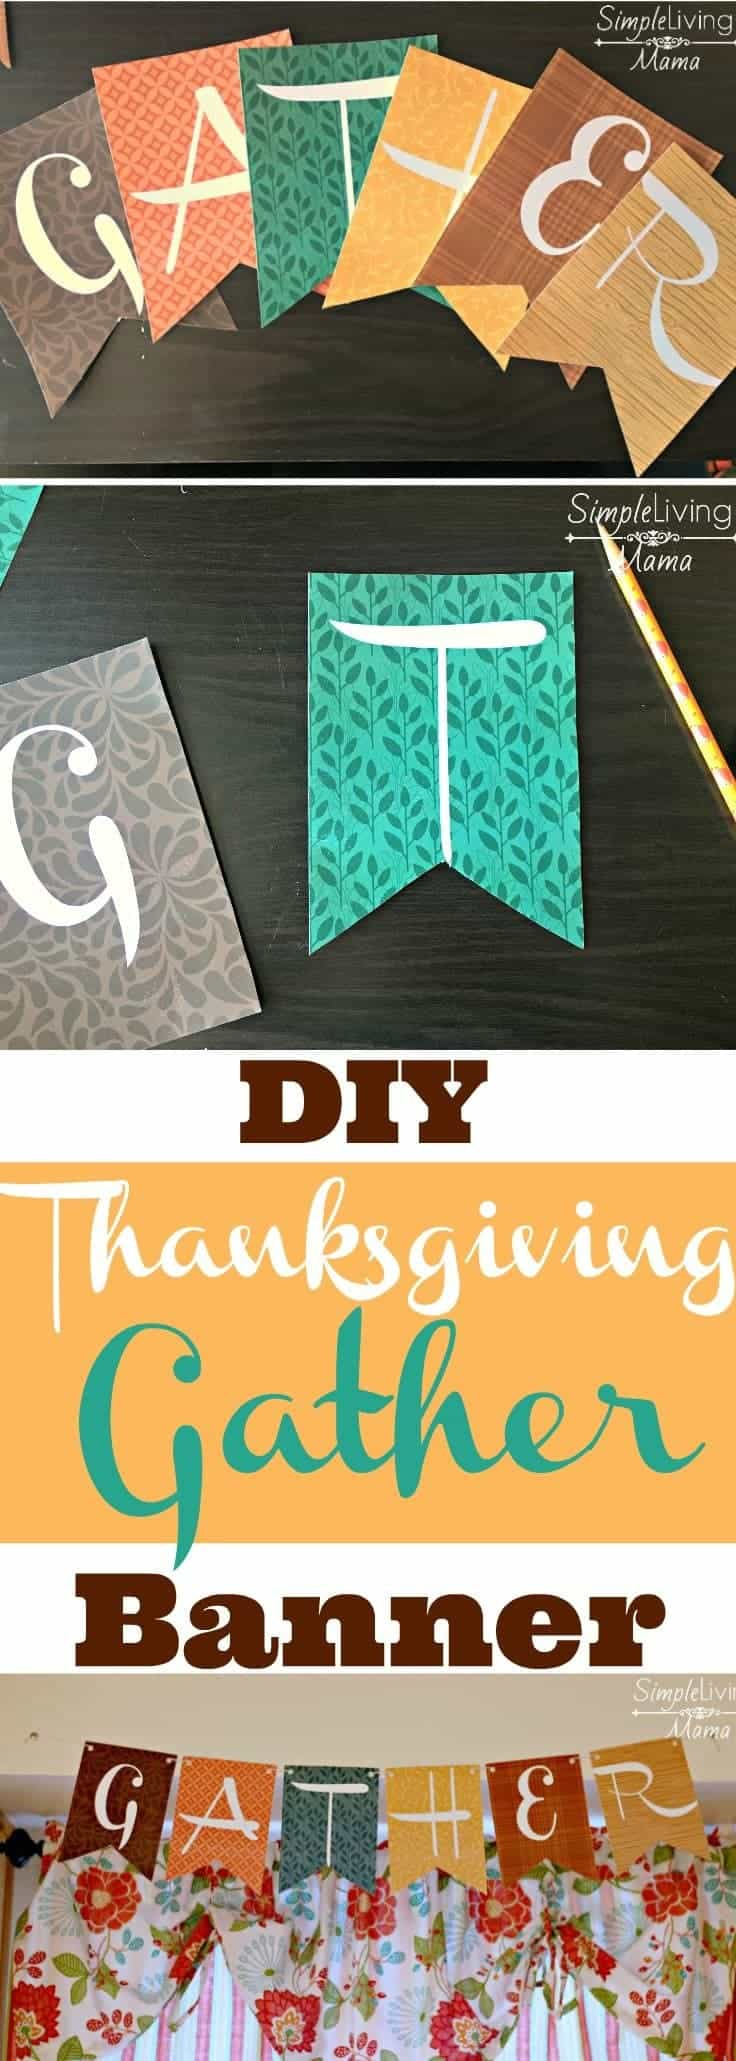 A DIY Thanksgiving Gather banner that would make the perfect addition to your fall decor!